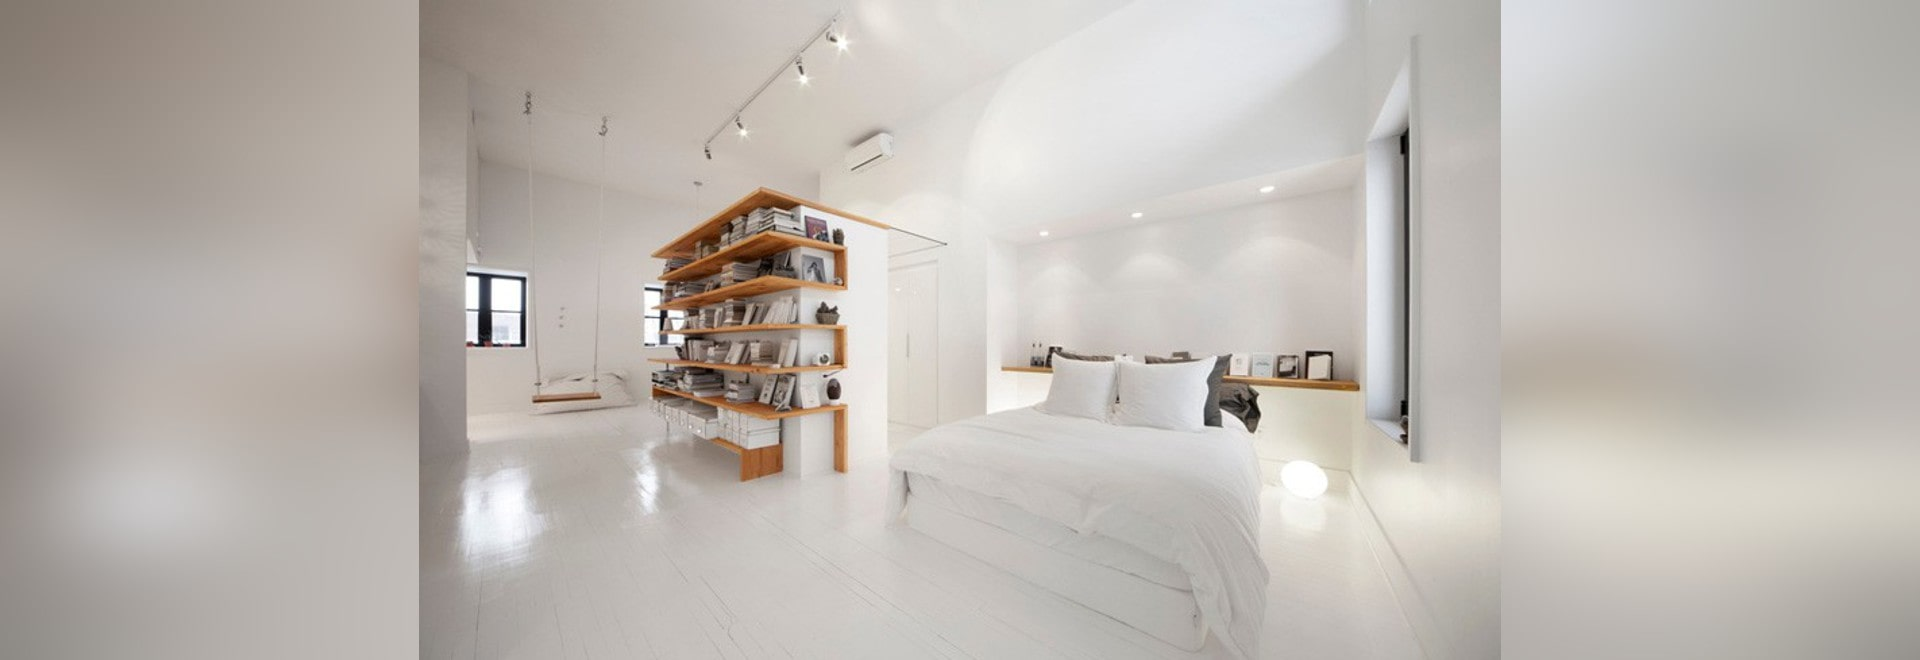 Transforming An Attic Into A Bedroom And Artist Studio & Transforming An Attic Into A Bedroom And Artist Studio - Montreal ...